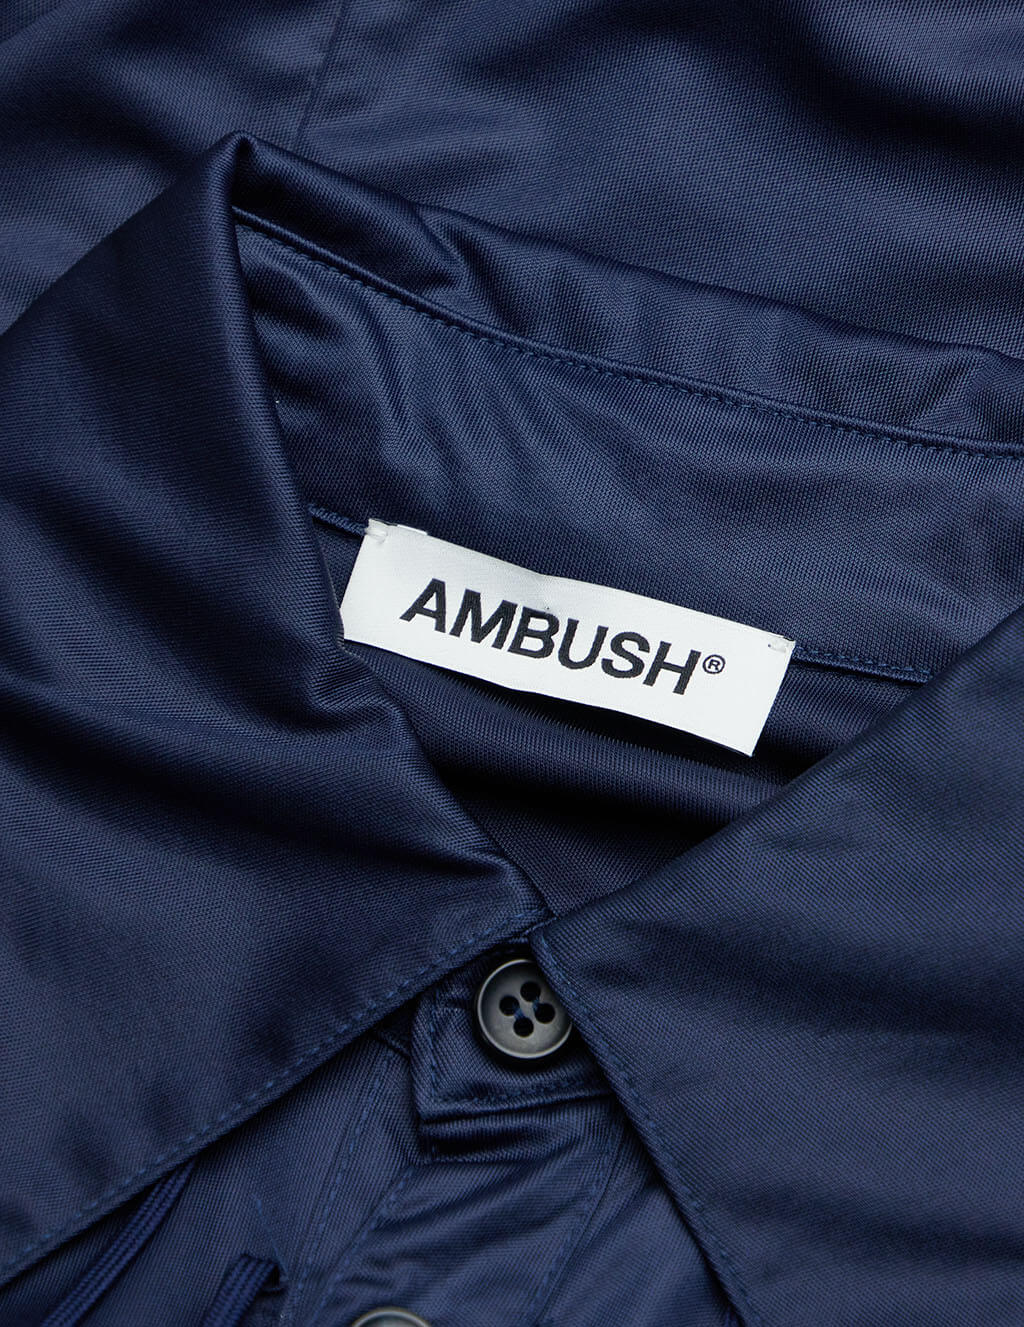 AMBUSH Women's Navy Fitted Shirt BMGA021F20FAB0014600